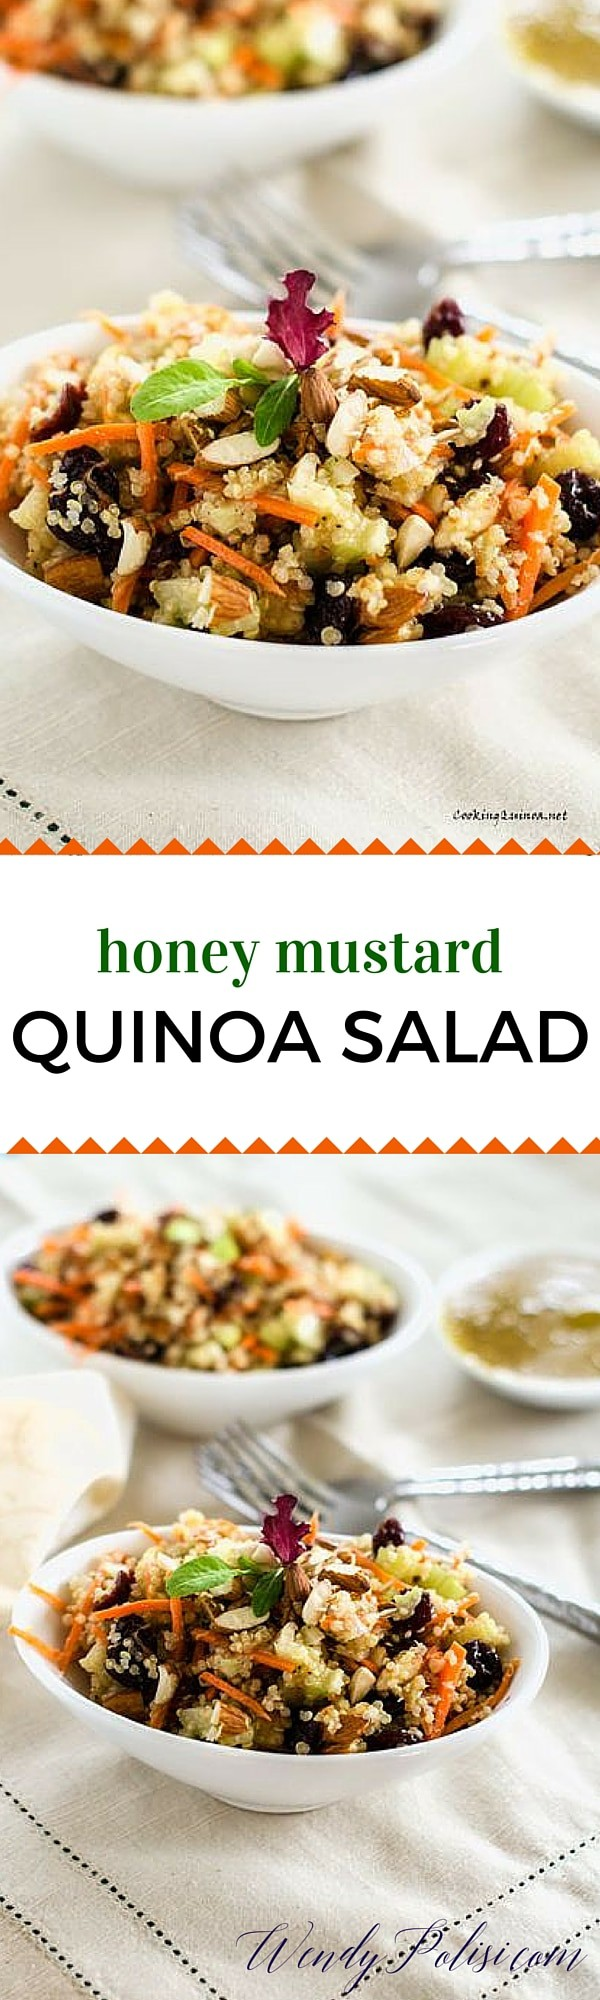 Honey Mustard Quinoa Salad - This easy vegan salad recipe is so delicious that even I didn't over complicate it! I love the crunch of the celery and almonds paired with the sweetness of the cranberries. I don't use bottled dressings so I've included my recipe, but feel free to use whatever Honey Mustard that you like!